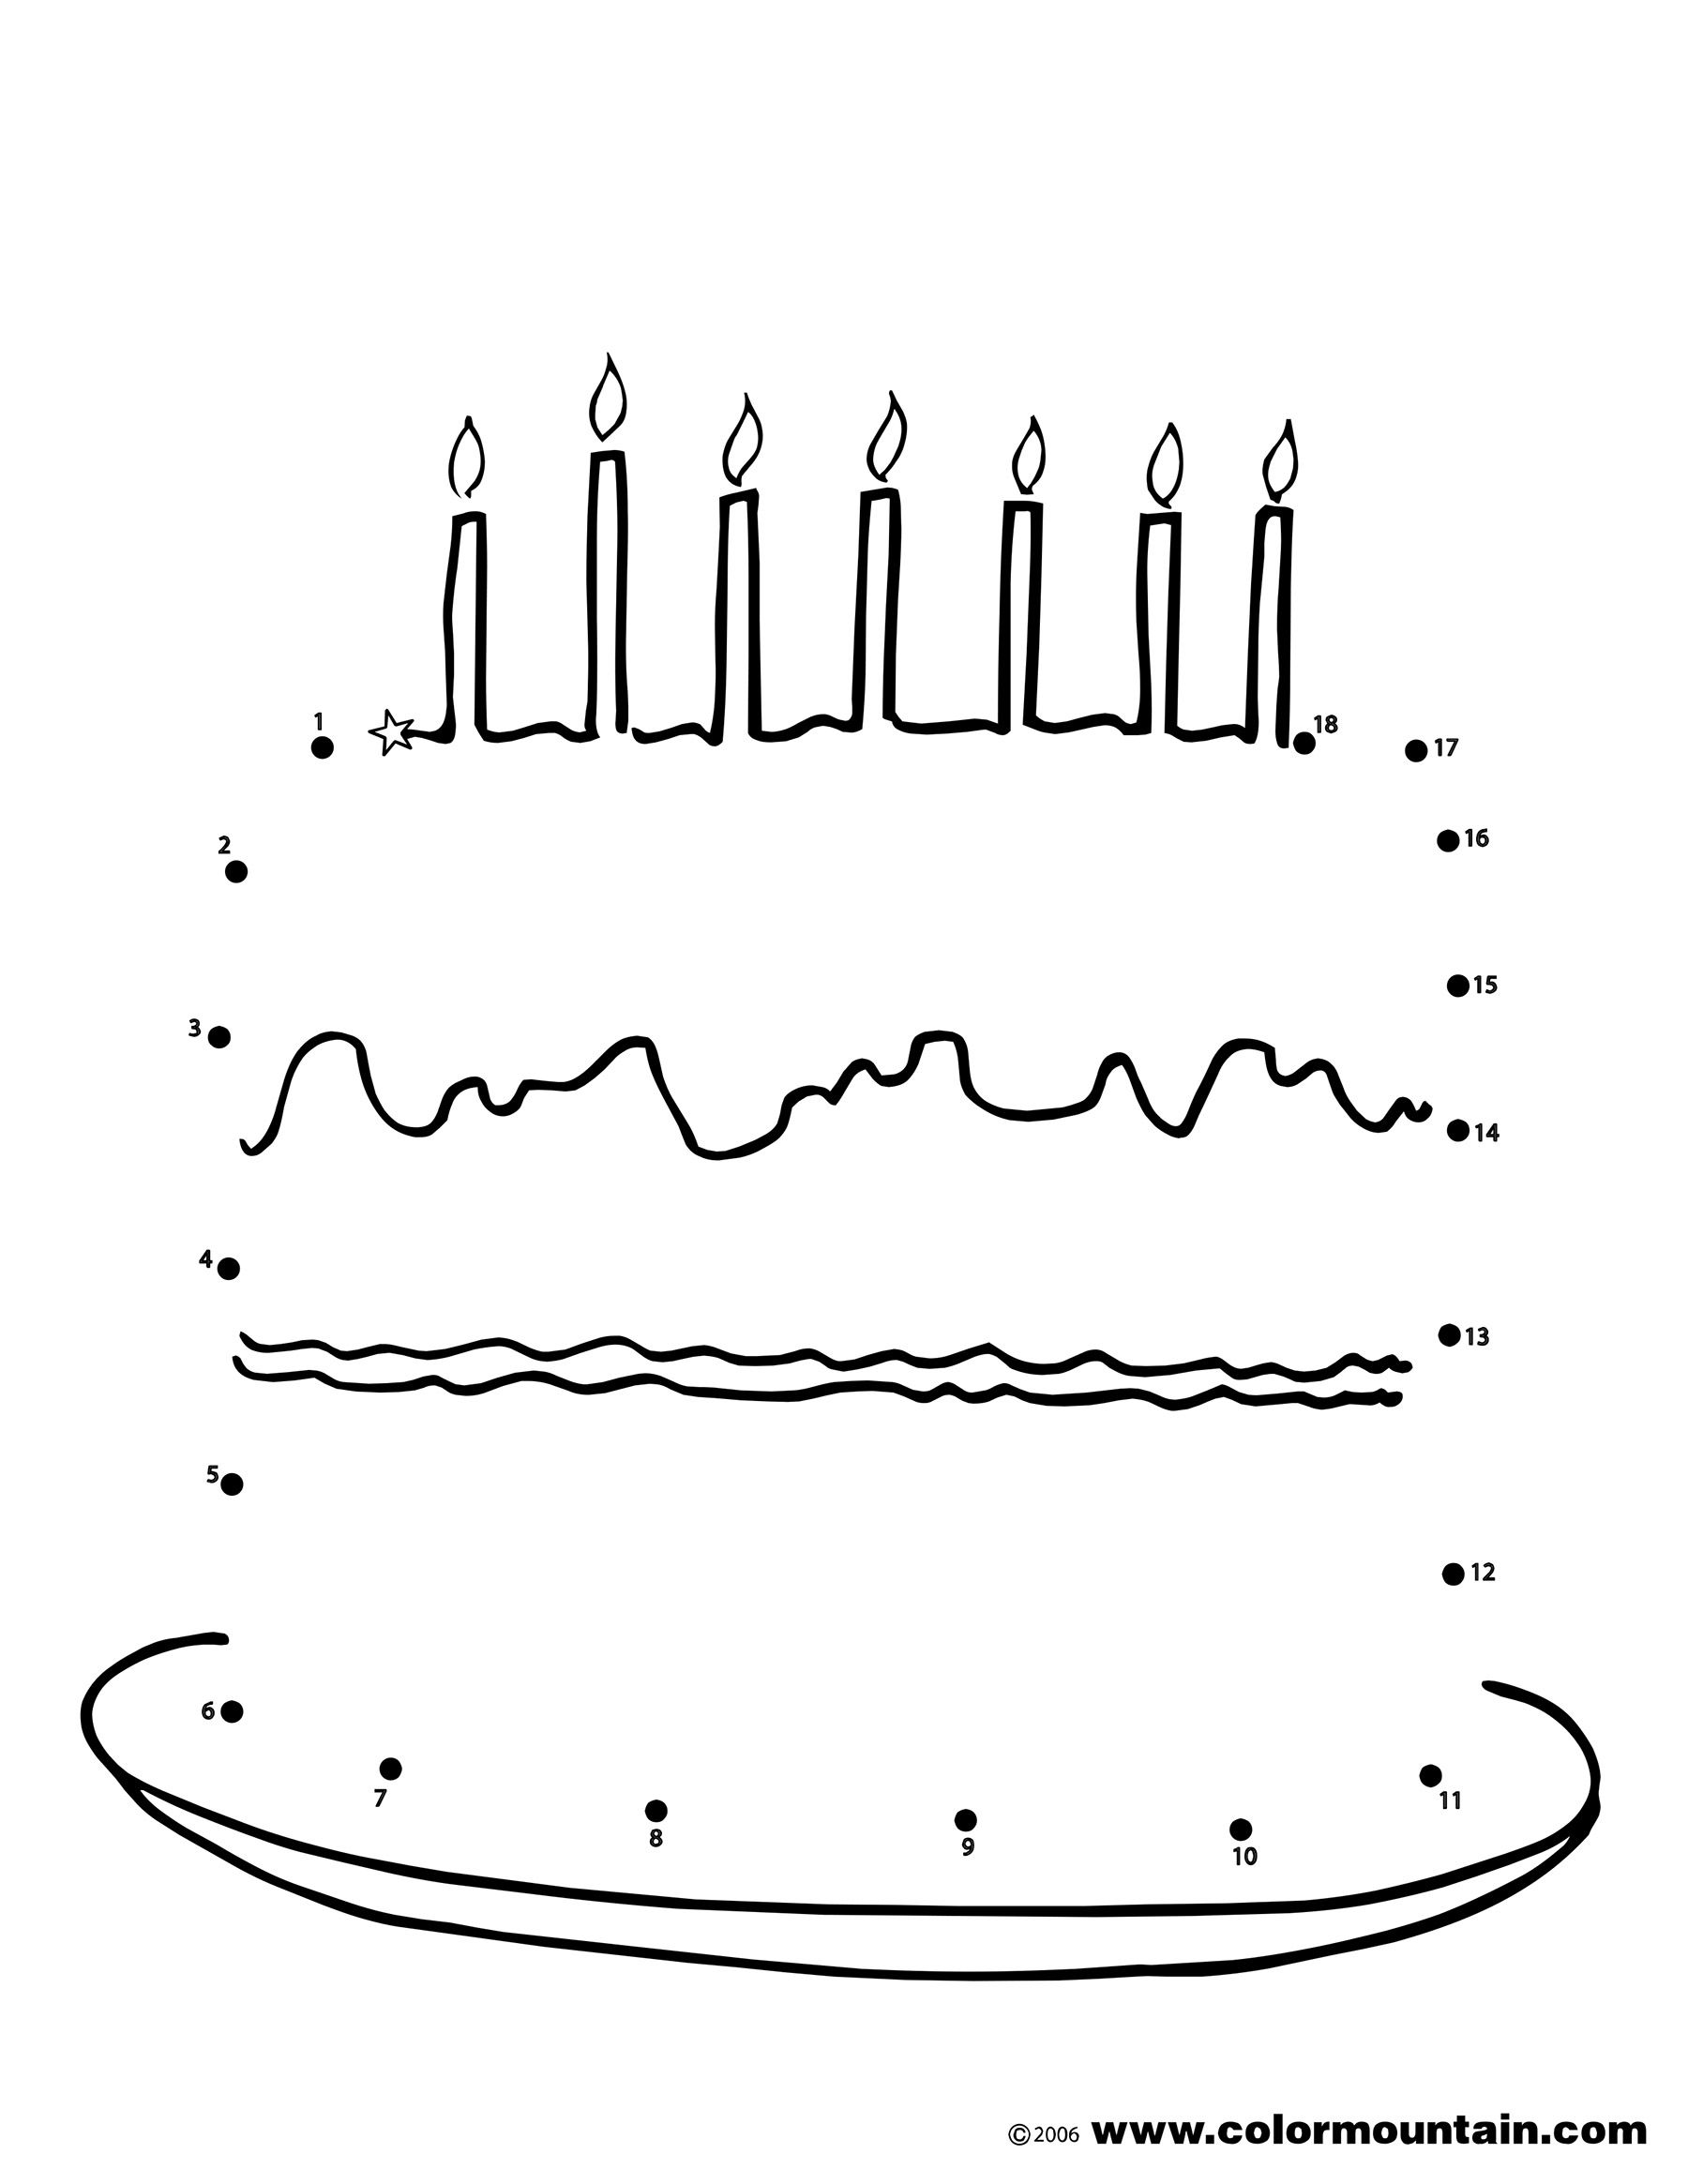 birthday cake dot to dot activity page coloring page doll birthday party art birthday cake. Black Bedroom Furniture Sets. Home Design Ideas